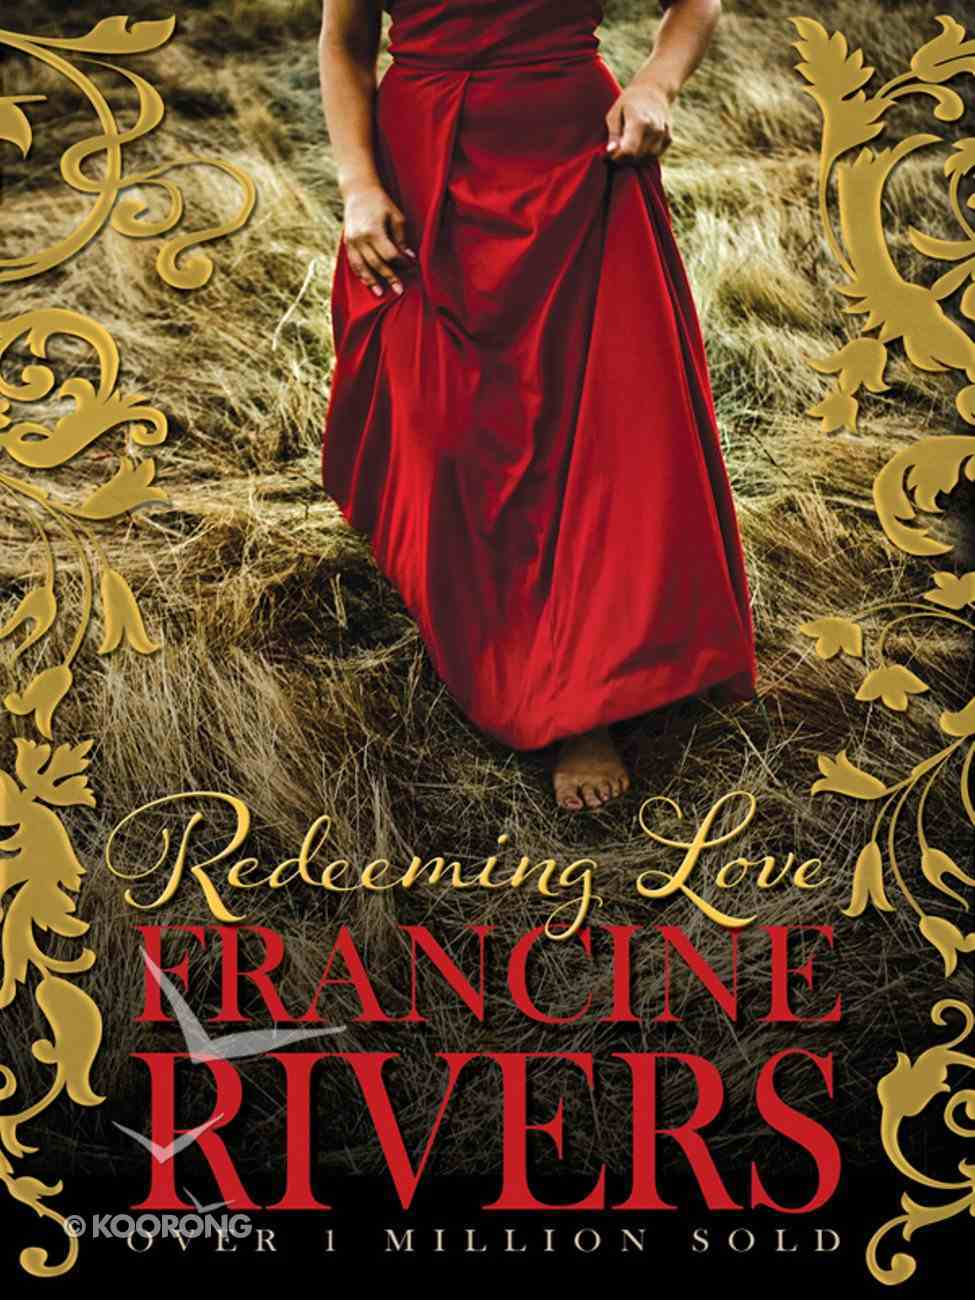 Redeeming Love by Francine Rivers | Koorong